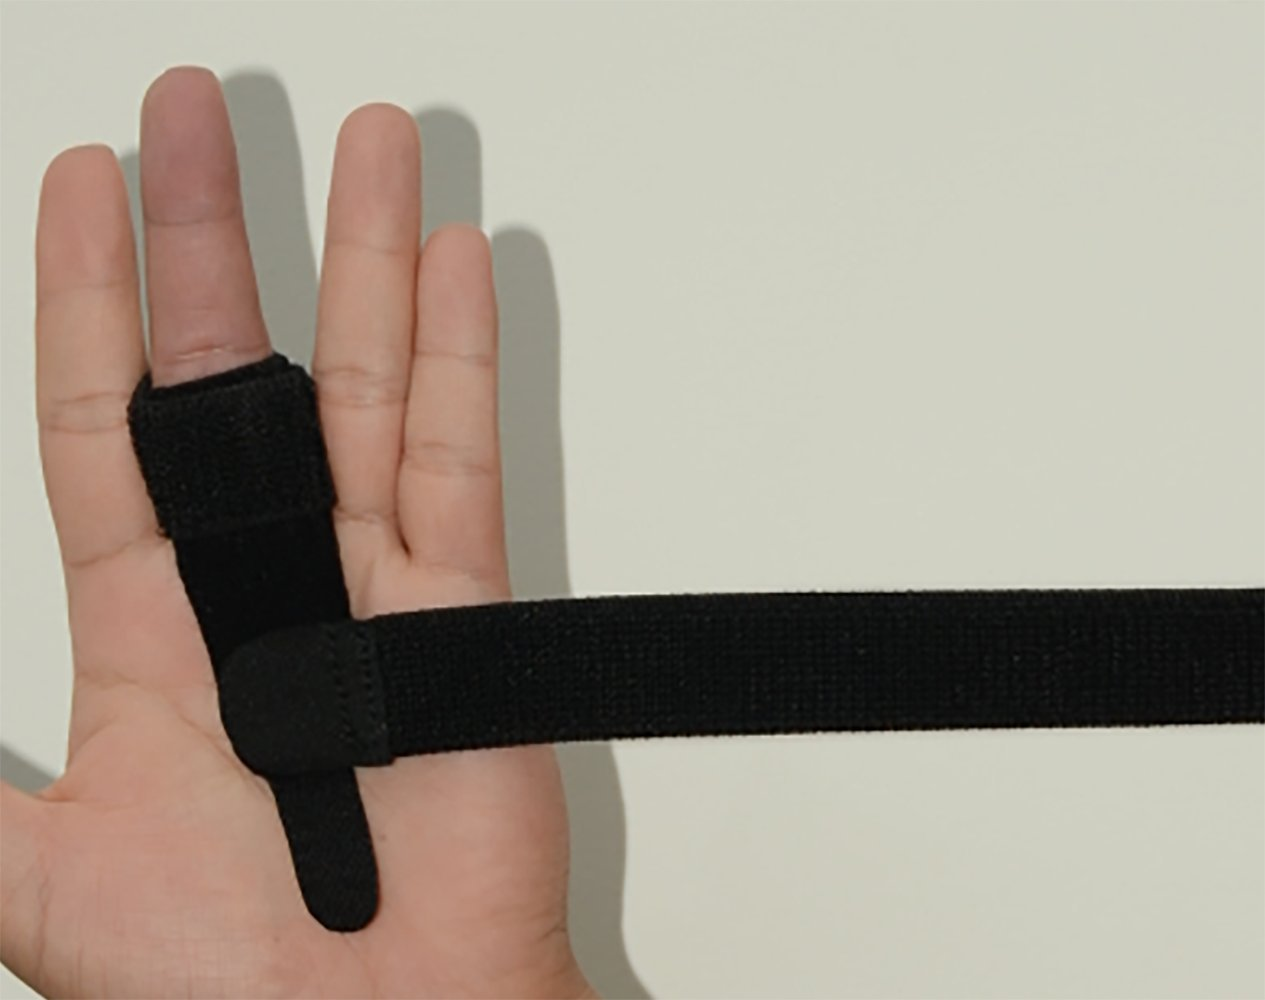 SW Trigger Finger Brace Splint Pain Relief Comfortable Materials Heal Stenosing Tenosynovitis and Softens Injury Symptoms | Adjustable for Pinky,Thumb,Ring,Index, and Middle Finger by SW (Image #5)